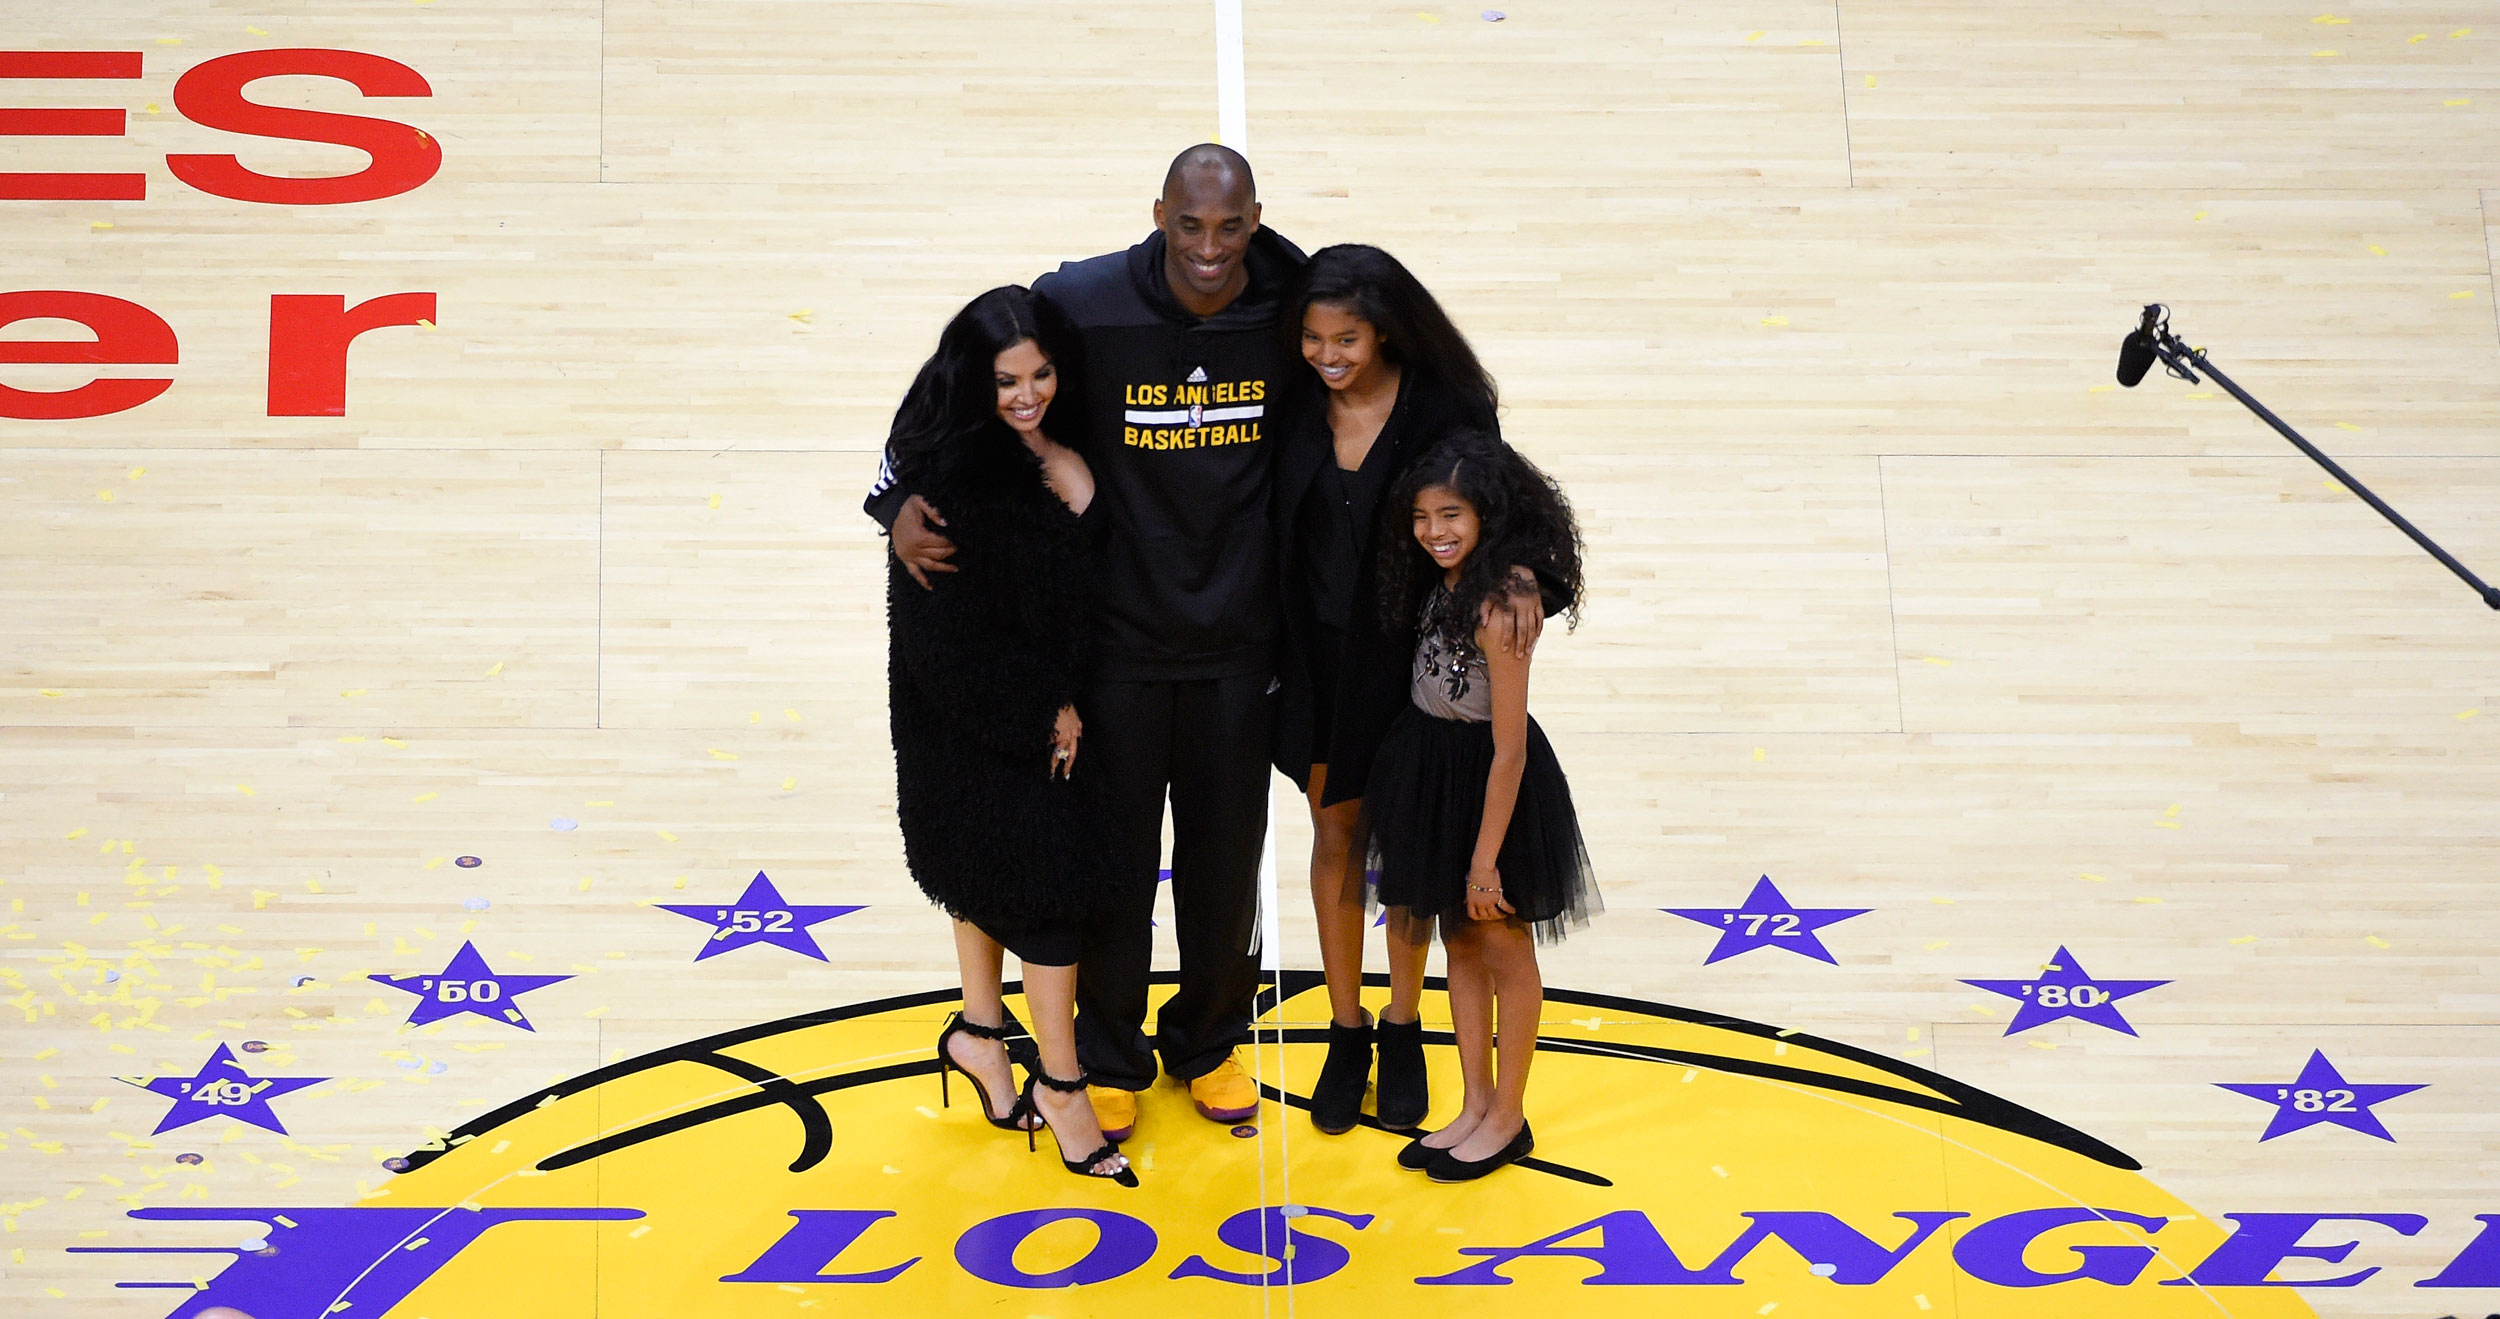 In this April 13, 2016, file photo, Kobe Bryant poses with his wife Vanessa and daughters Natalia and Gianna in Los Angeles. Bryant, the 18-time NBA All-Star who won five championships and became one of the greatest basketball players of his generation during a 20-year career with the LA Lakers, died in a helicopter crash on Sunday.